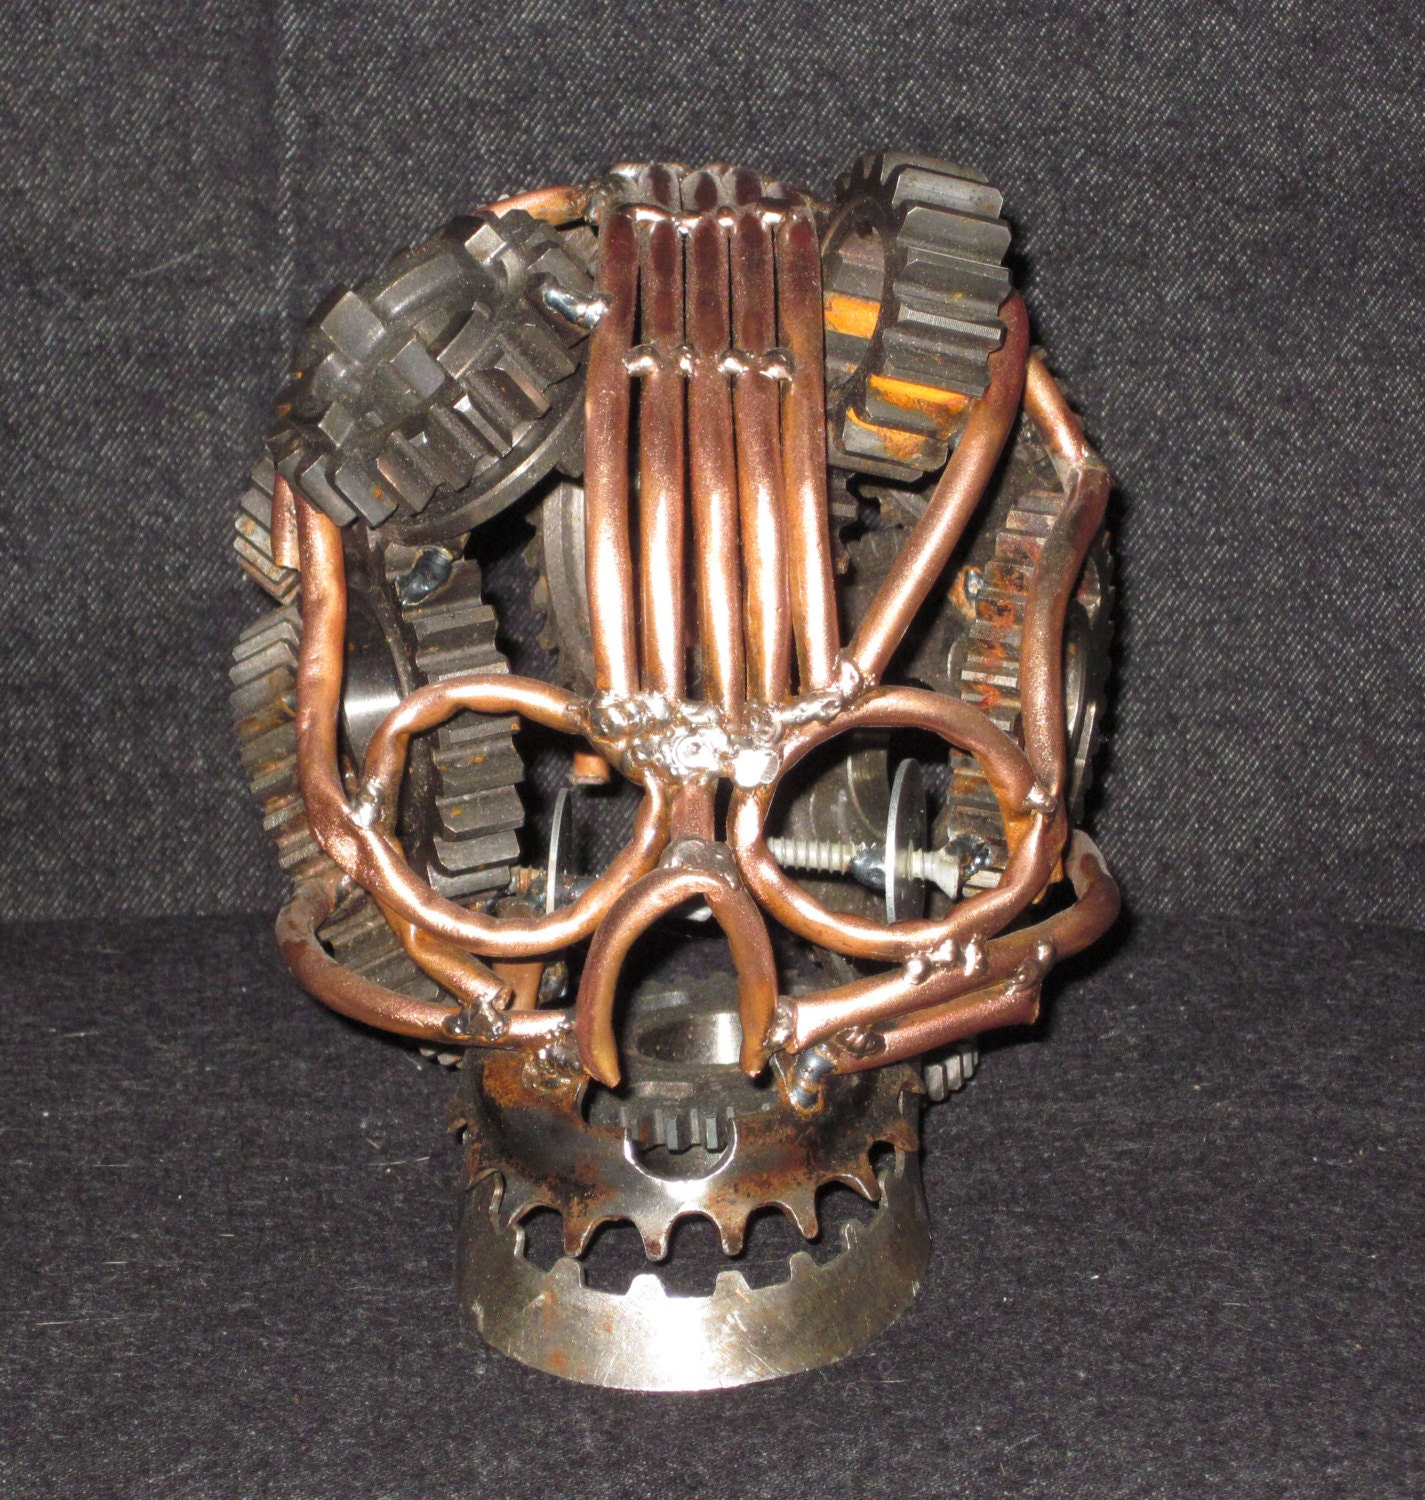 Copper and gears make this Skull - Beckspecialties